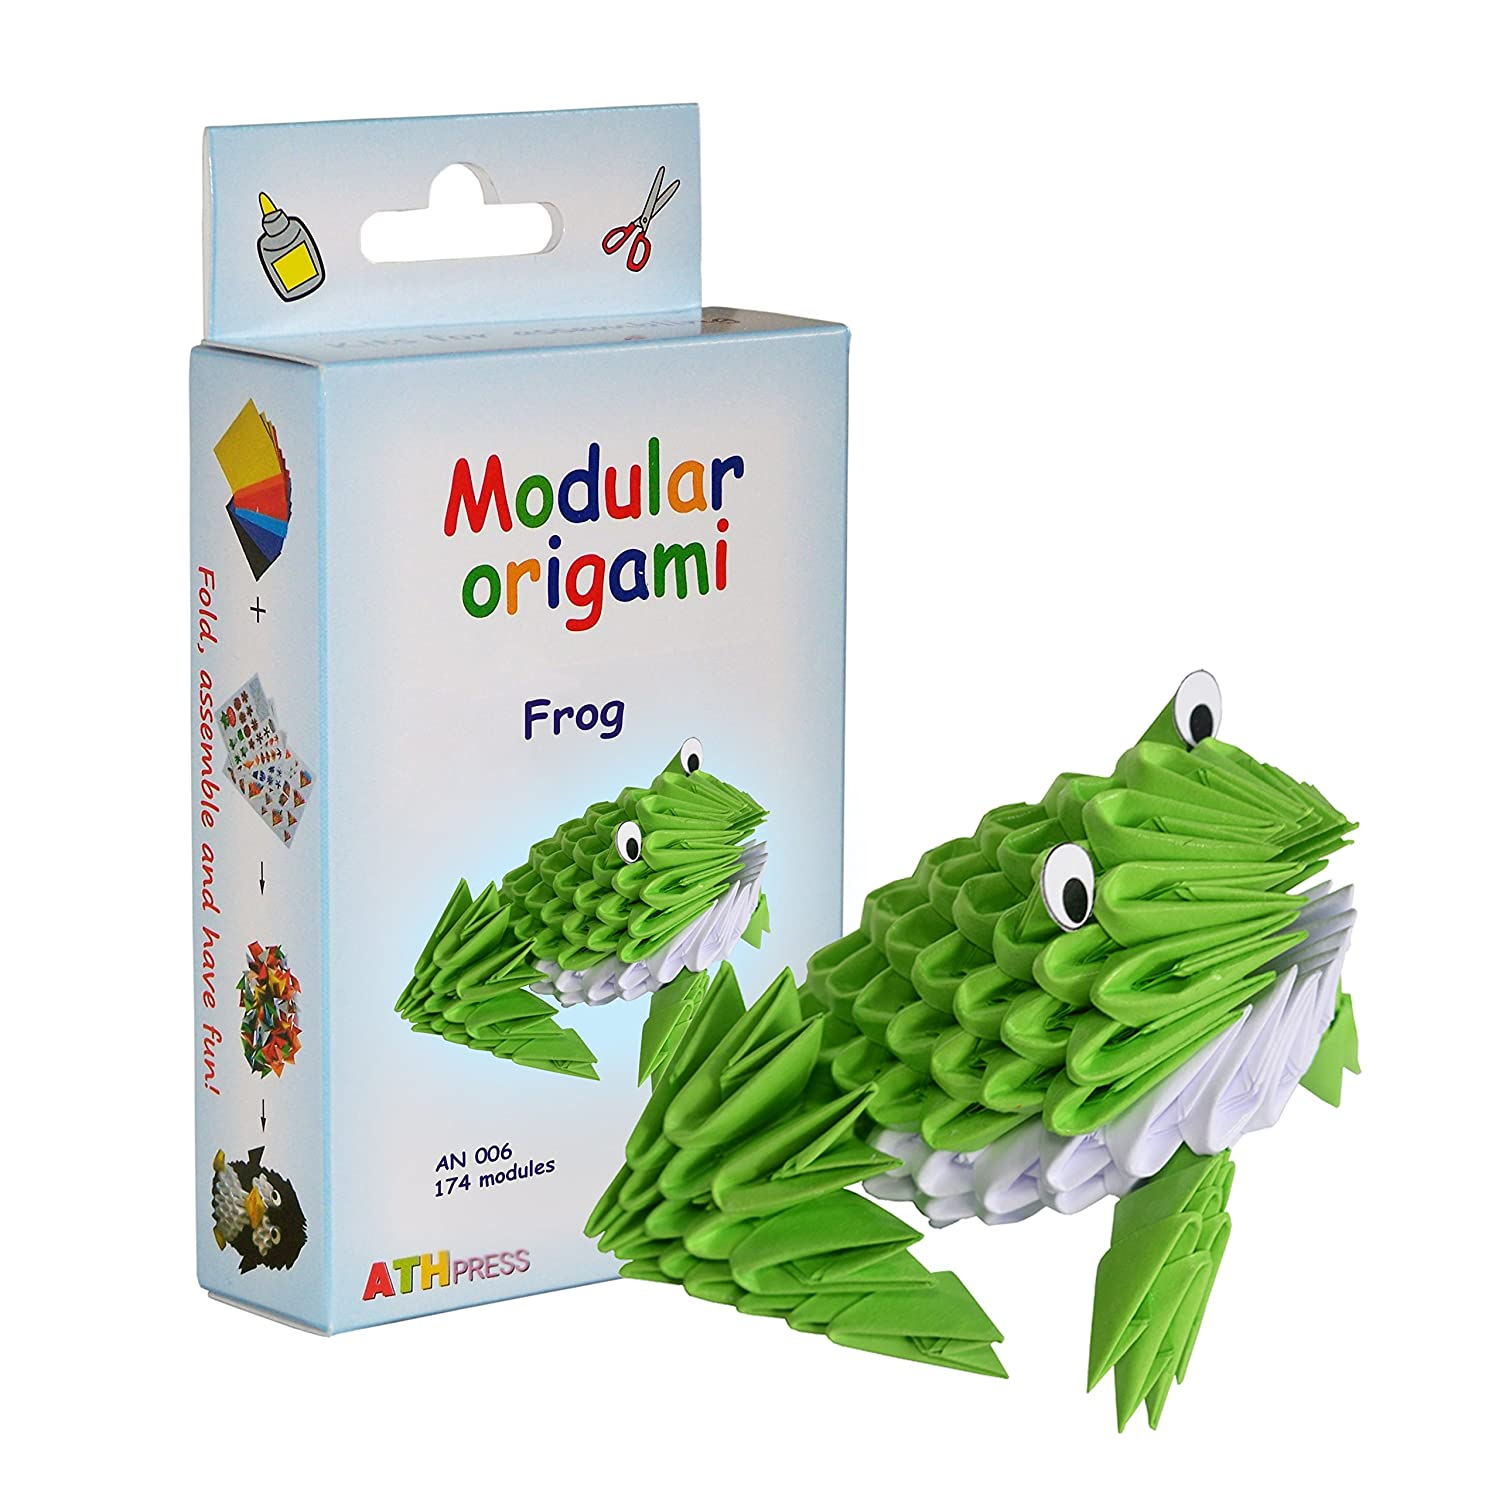 Modular Origami Kit-Frog ATH Press Ltd. AN 006